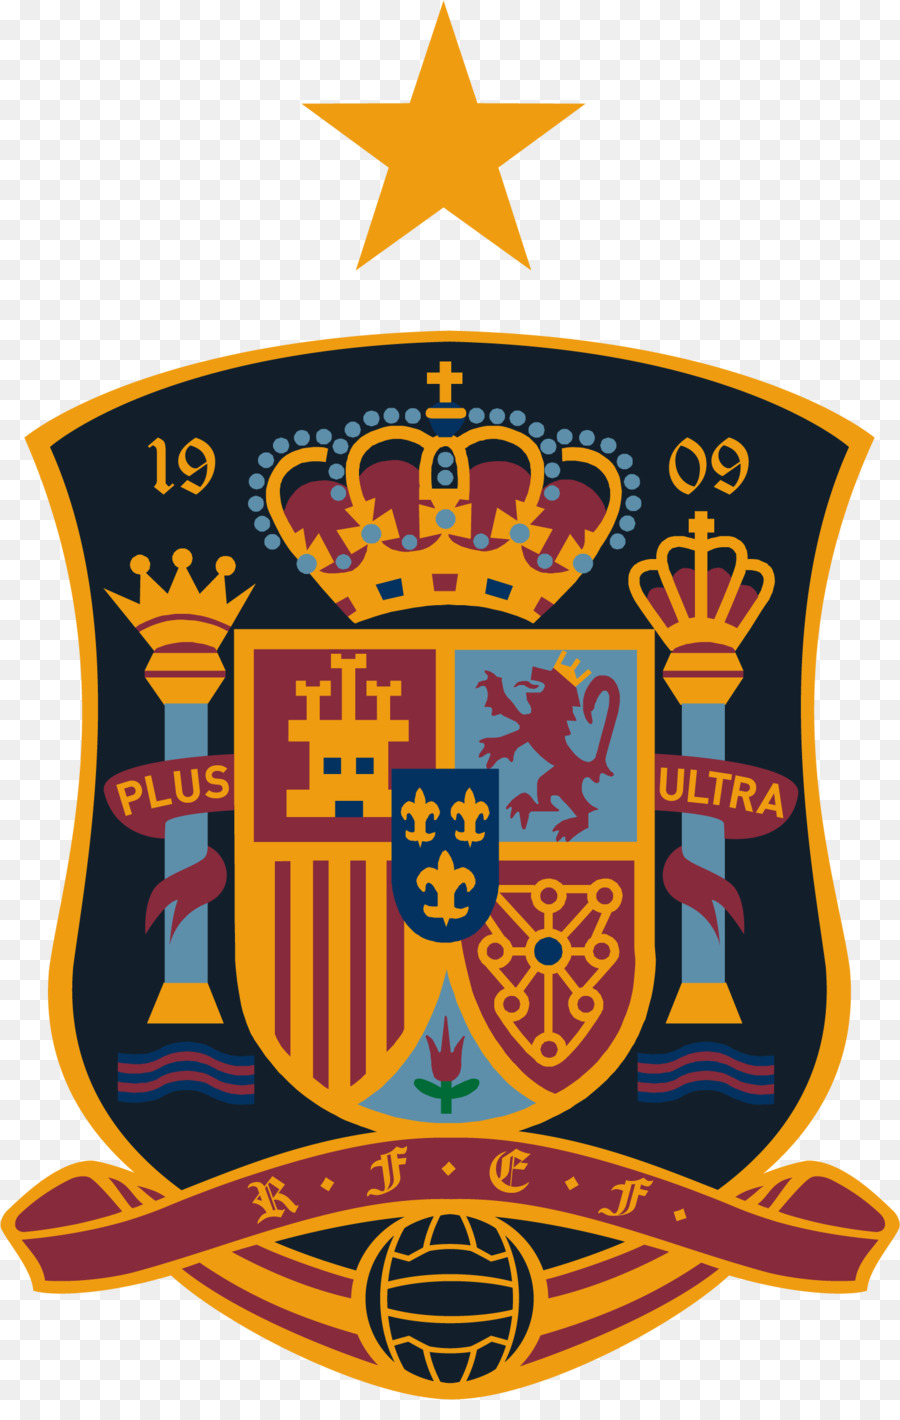 Escudo de espa a clipart picture royalty free library Football, Font, Badge, transparent png image & clipart free download picture royalty free library